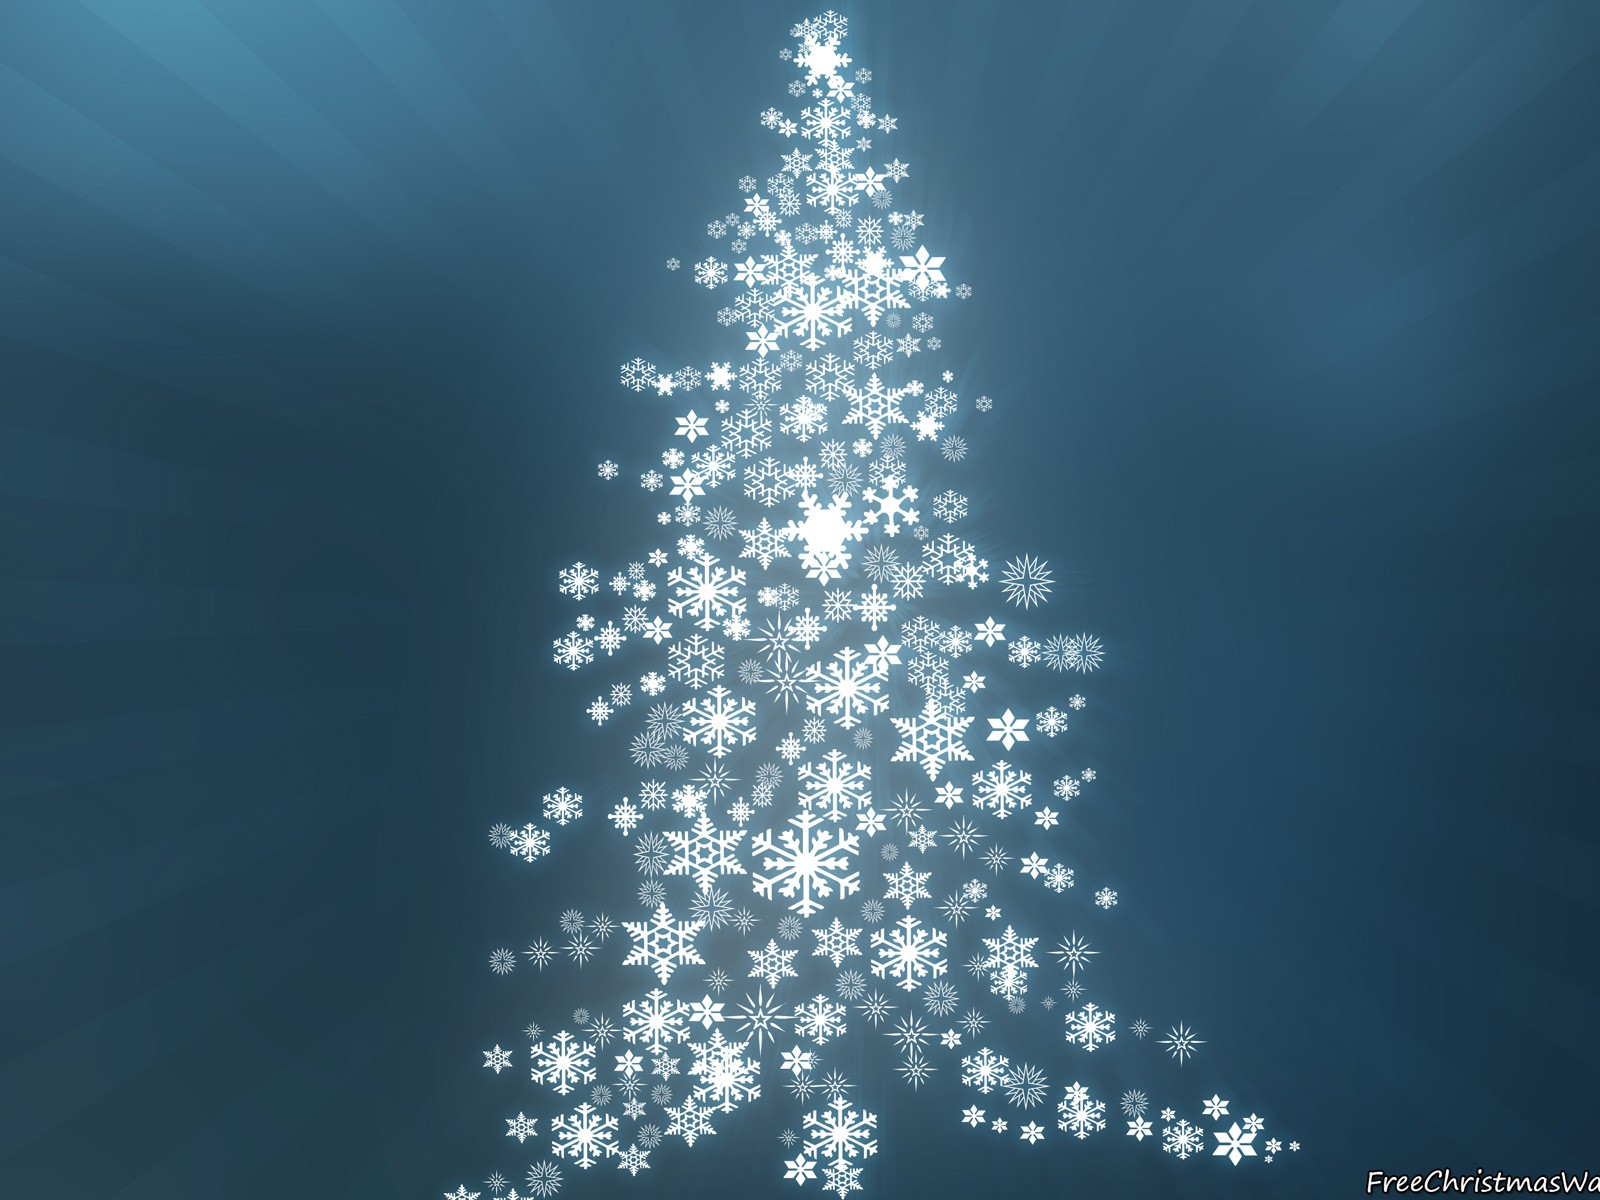 Holiday Blurred Christmas Tree